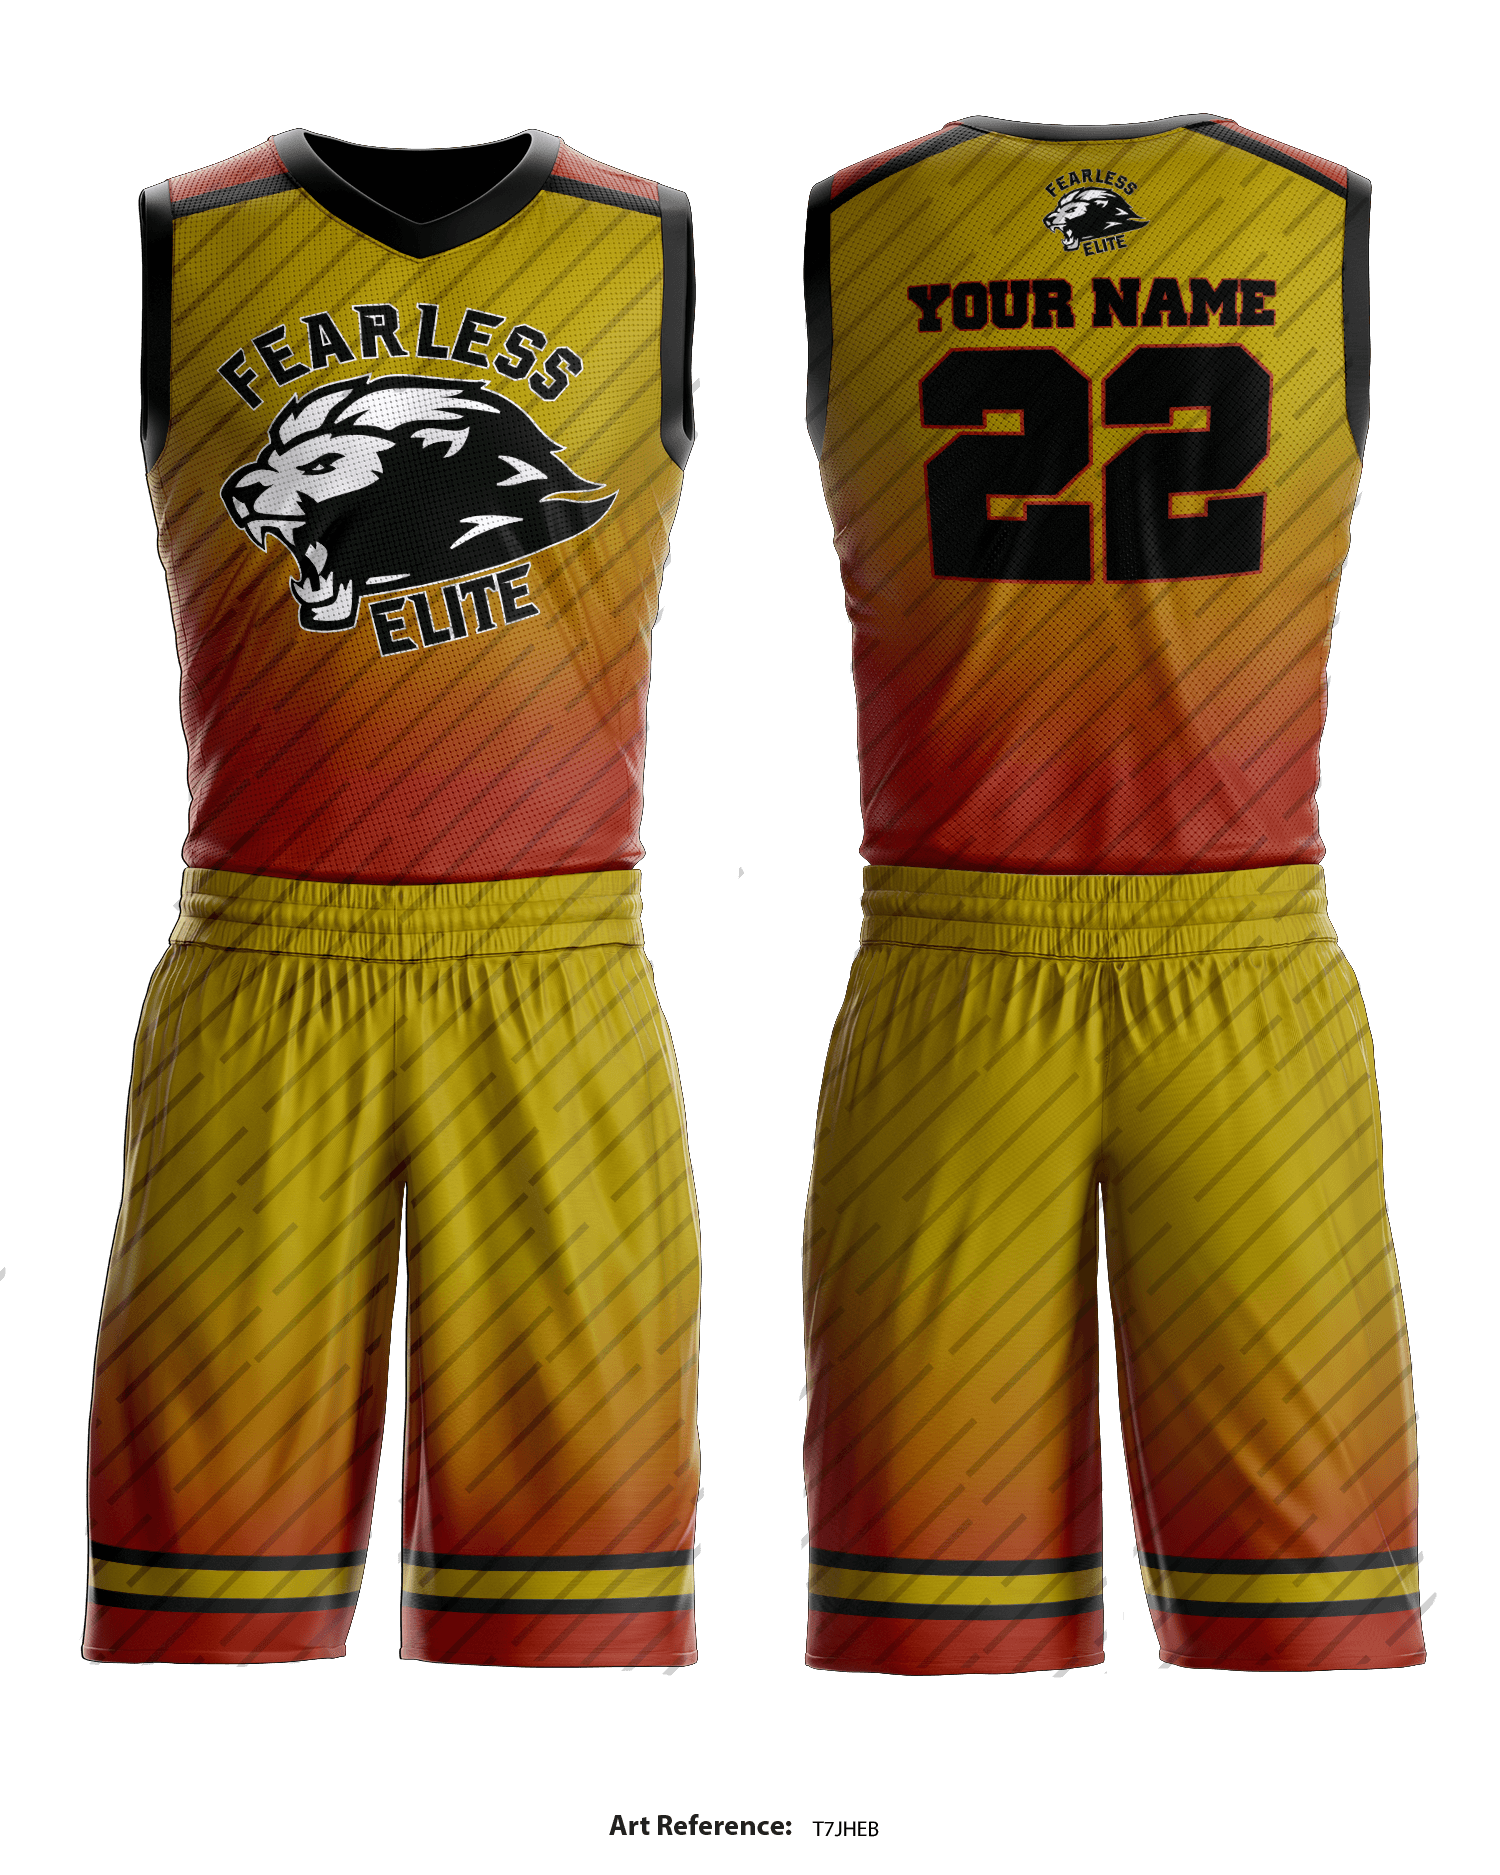 huge selection of a8f20 036a6 Fearless Elite Basketball Uniform - t7JHEb